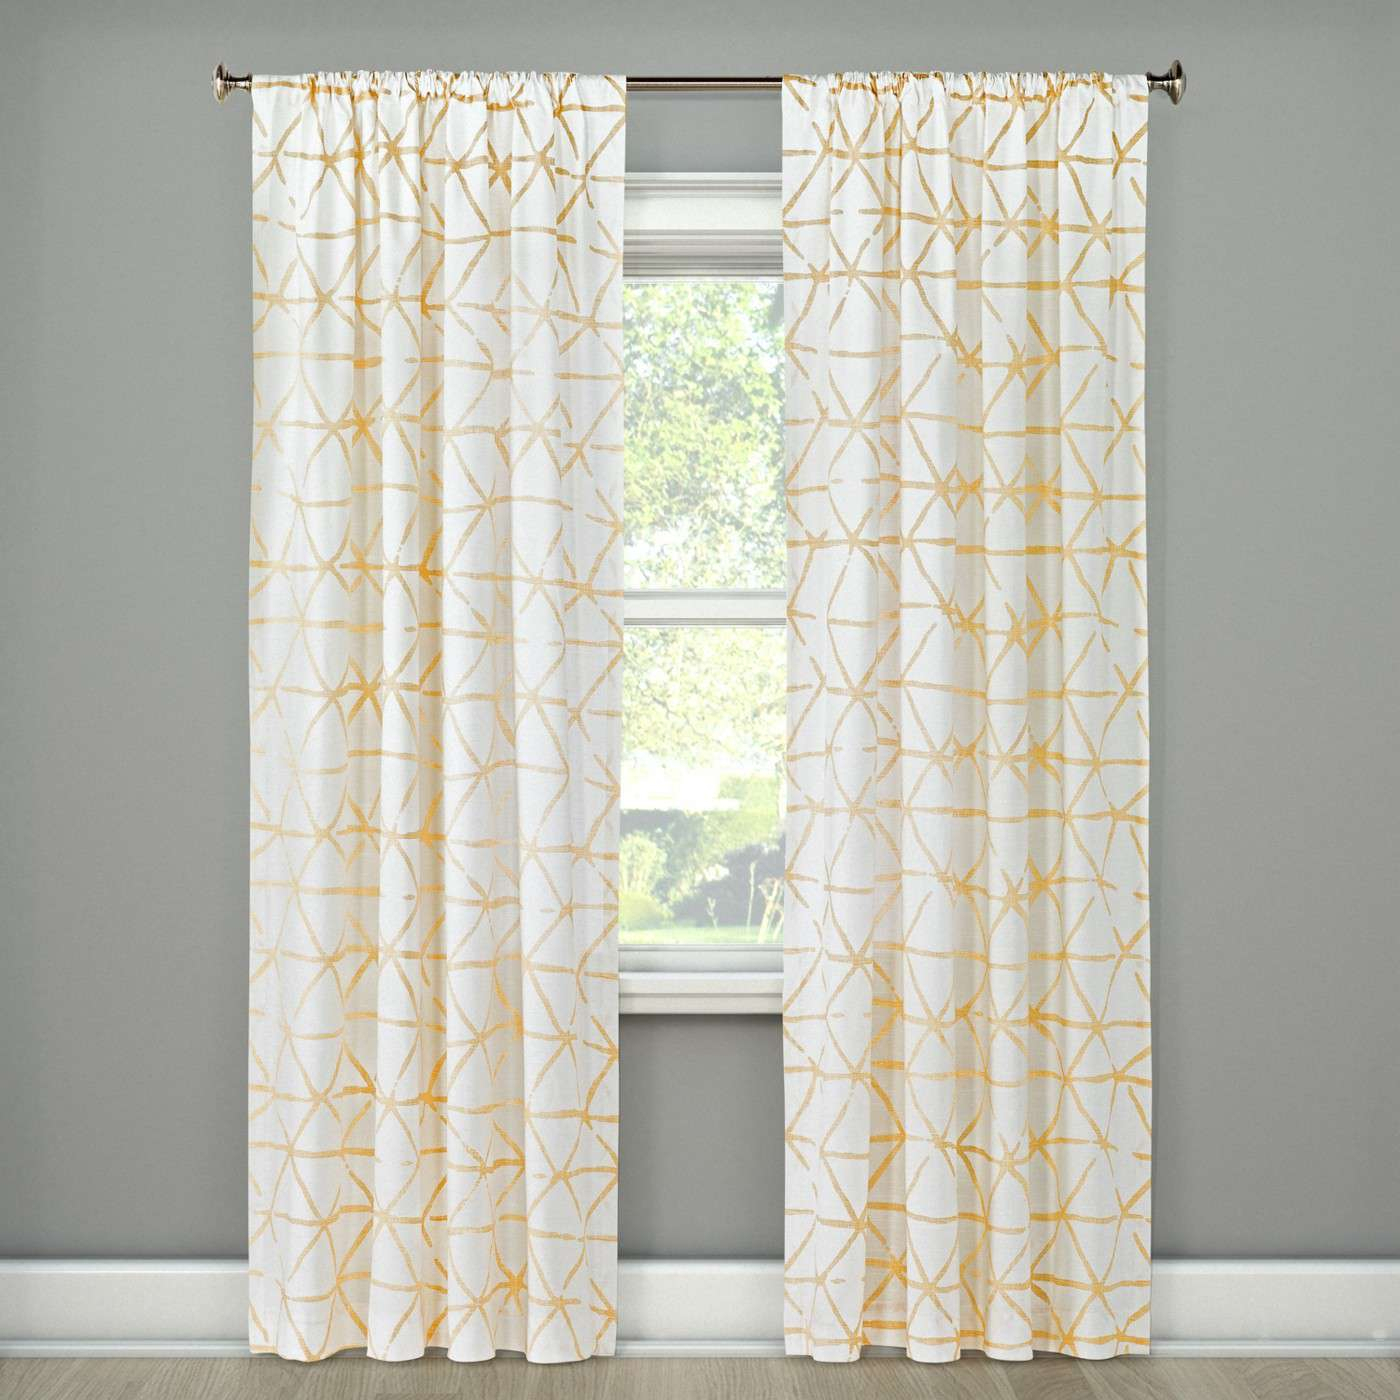 The Best Places To Buy Curtains In 2019 In All Seasons Blackout Window Curtains (View 17 of 20)